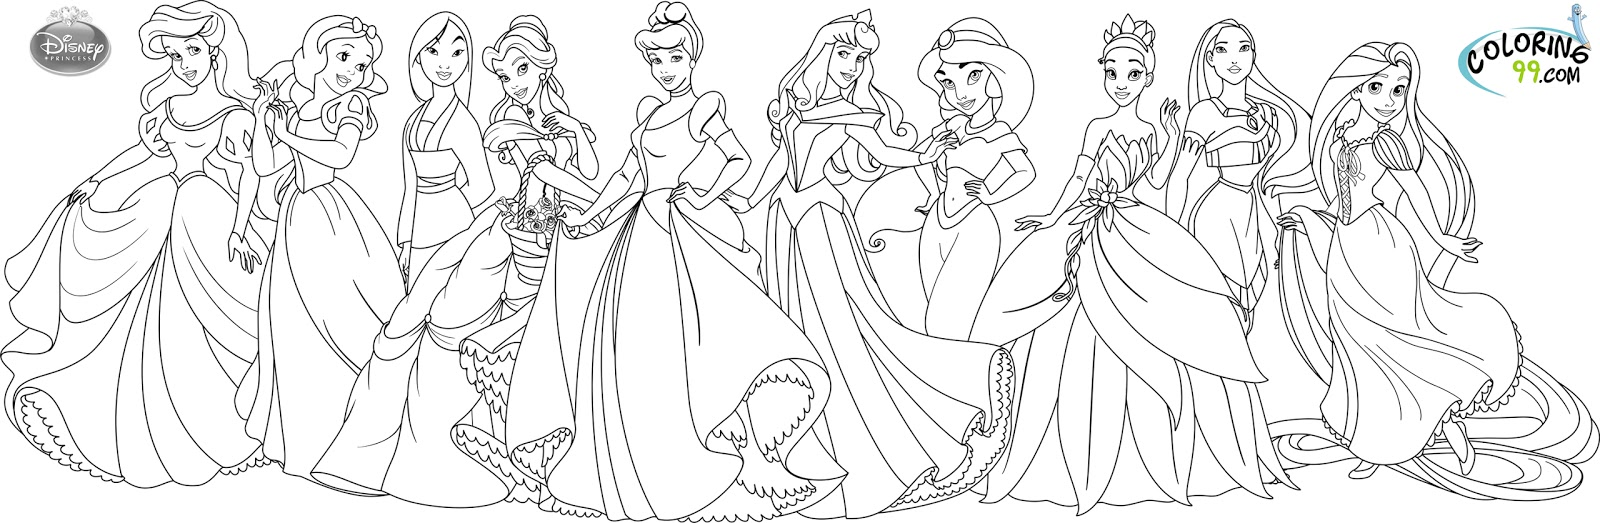 Disney Princess Coloring Pages | Team colors